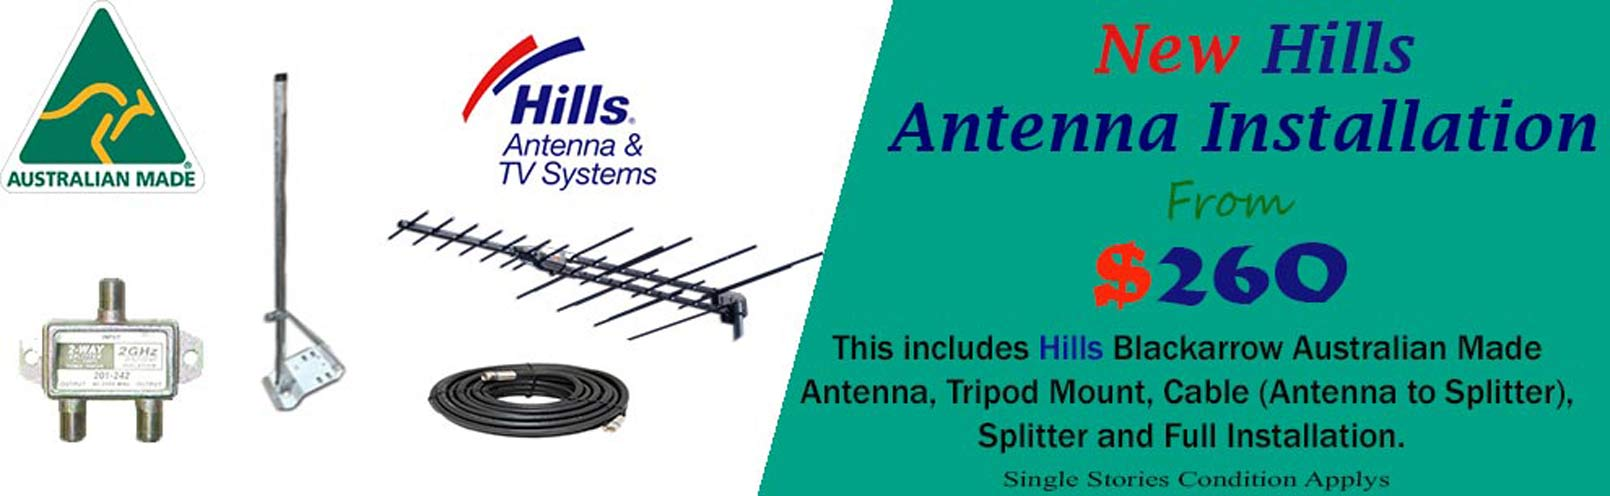 Hills Digital Antenna <a href='Specials'>Read More</a>